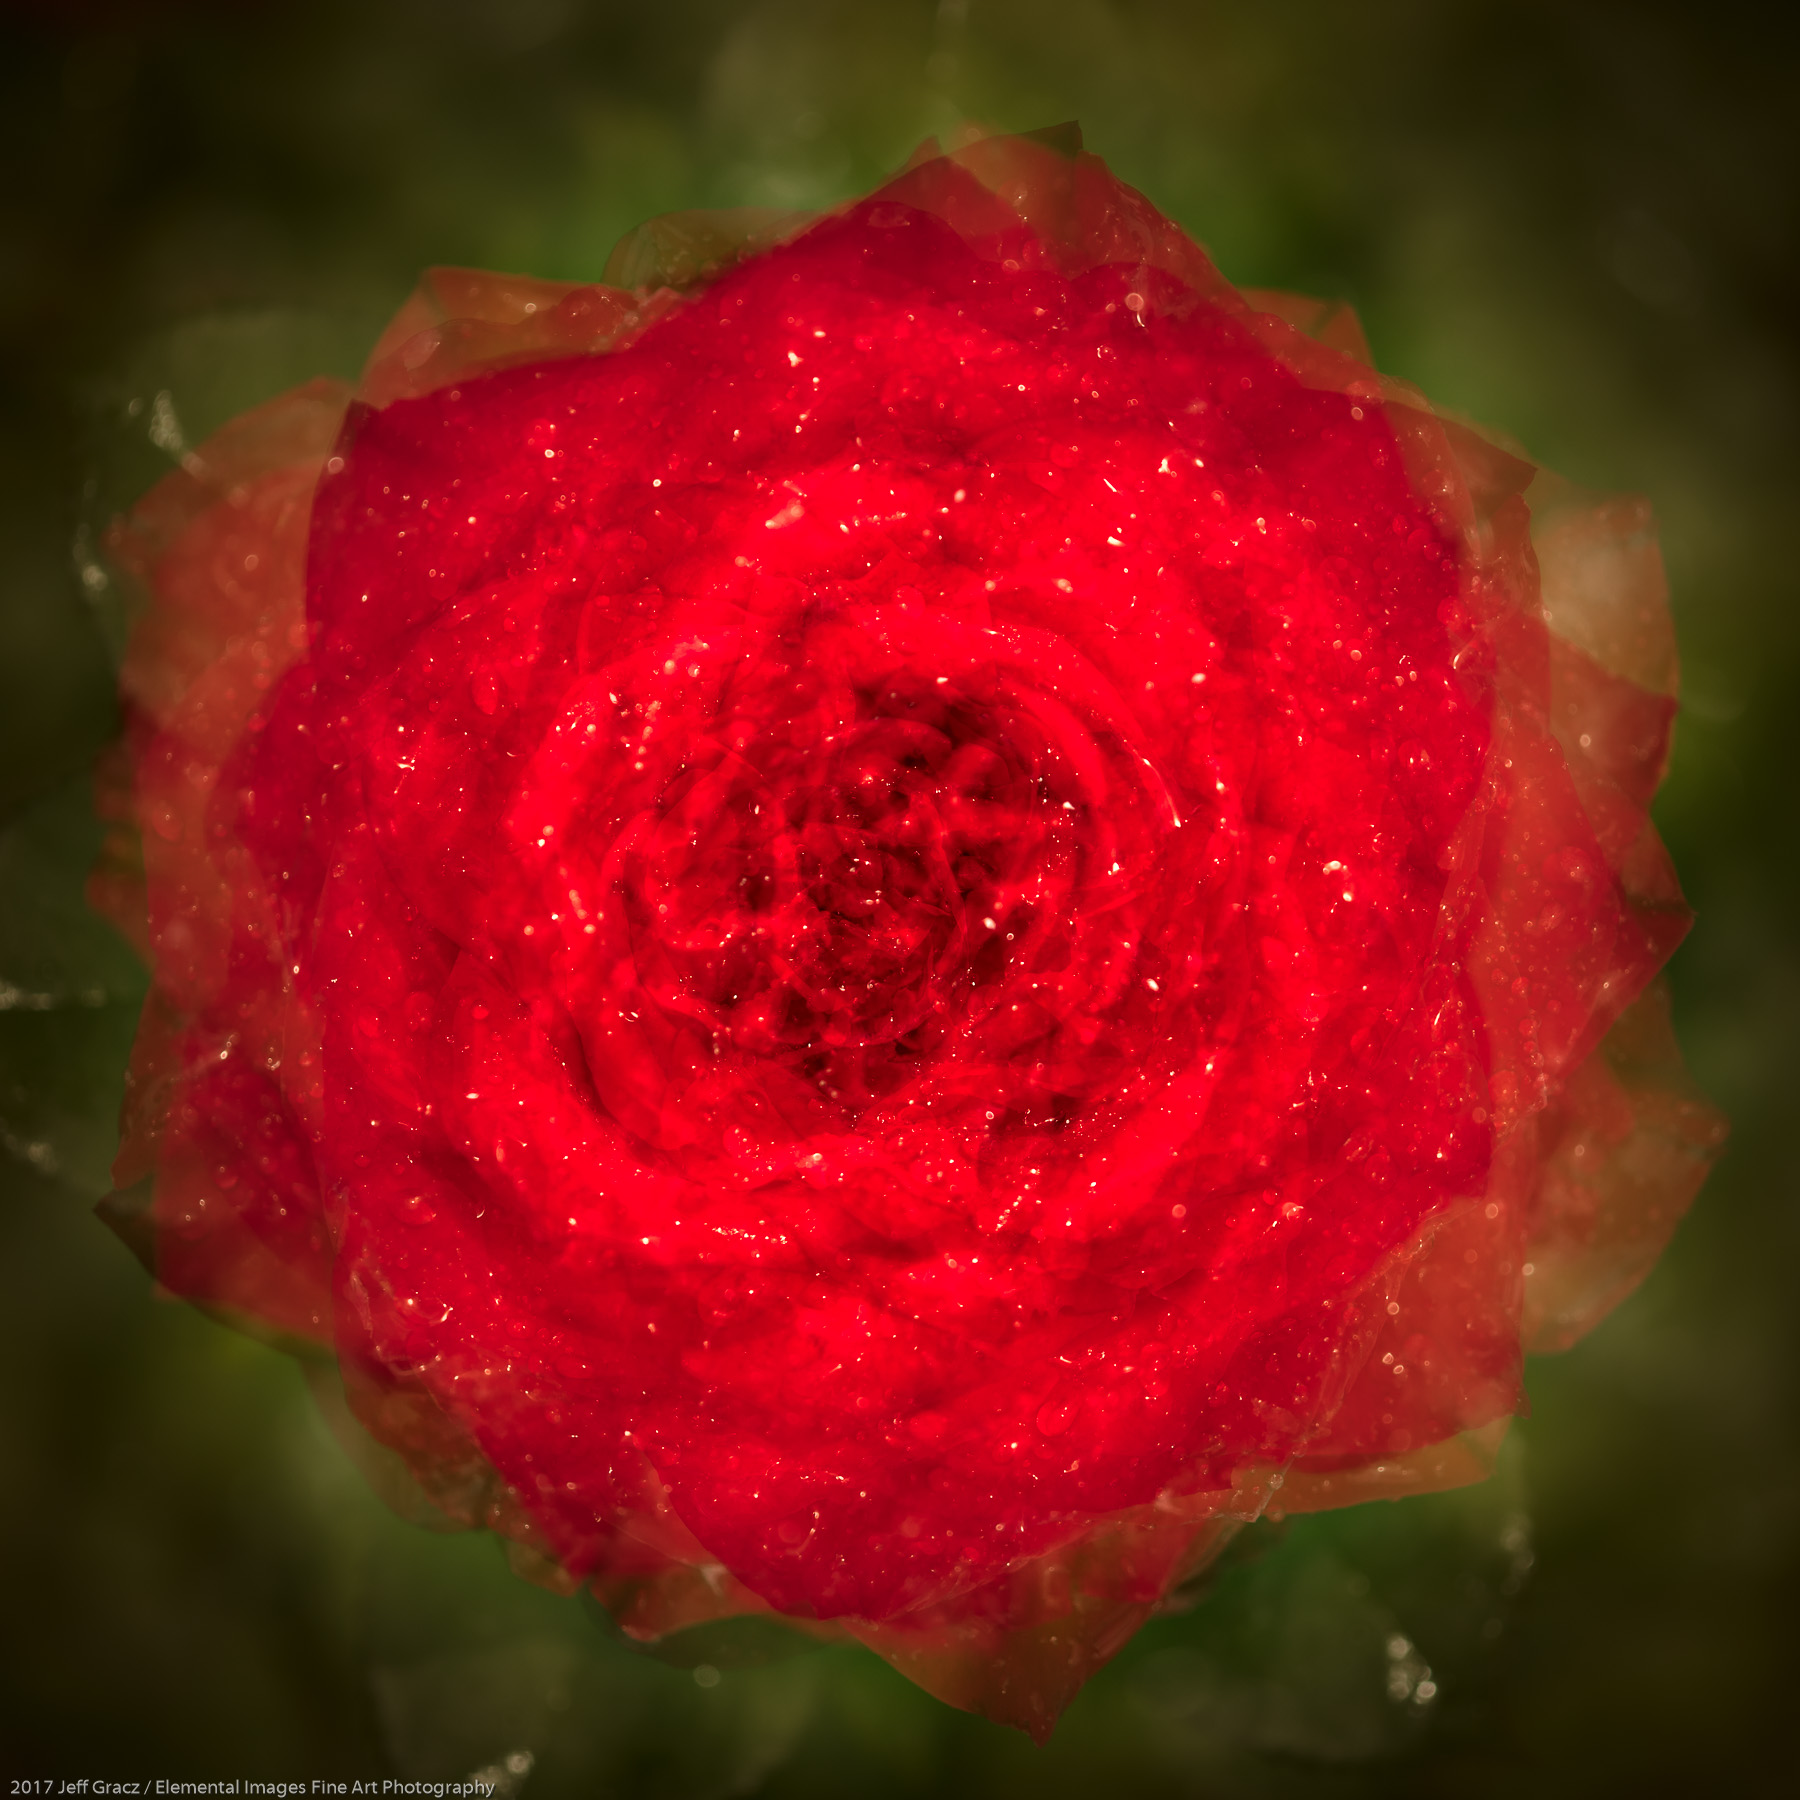 Roses #106 | Portland | OR | USA - © 2017 Jeff Gracz / Elemental Images Fine Art Photography - All Rights Reserved Worldwide